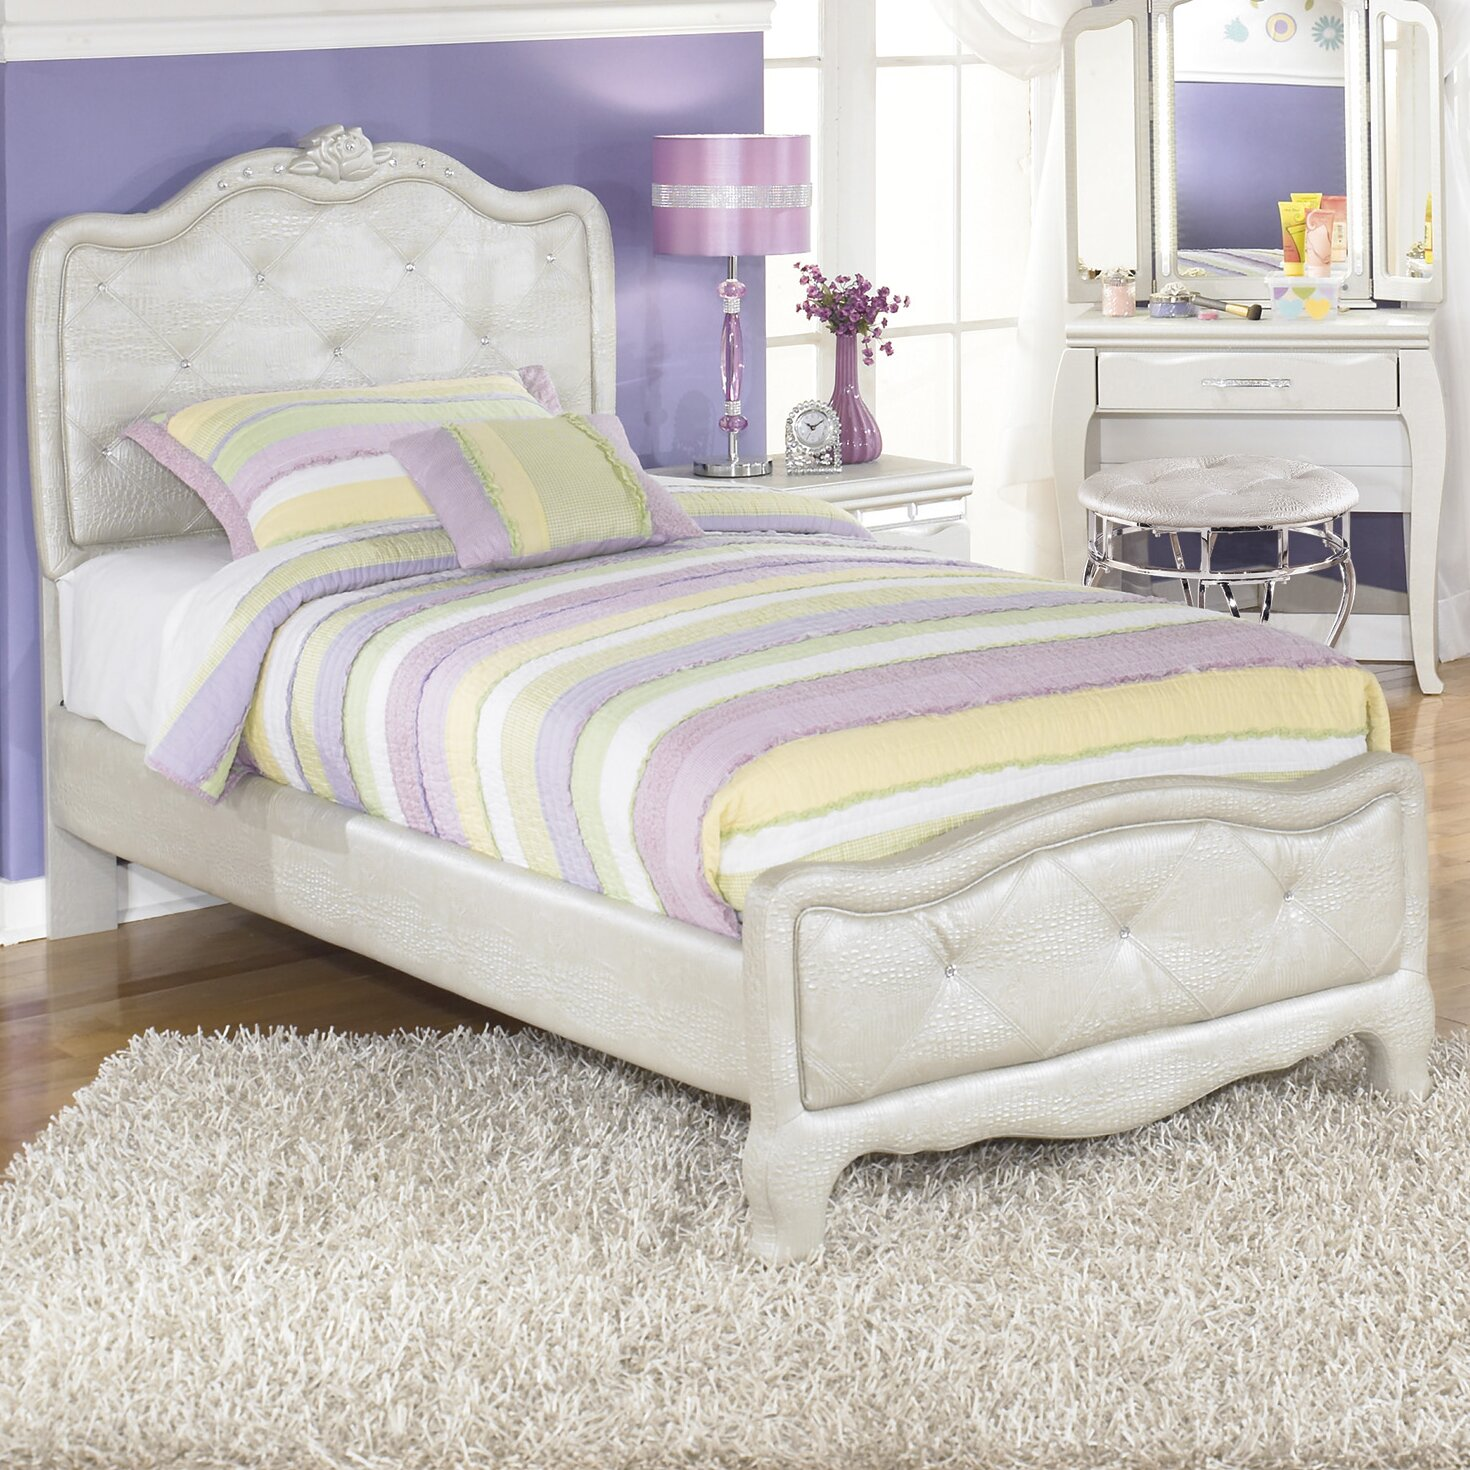 Signature design by ashley zarollina panel bed reviews for Youth furniture